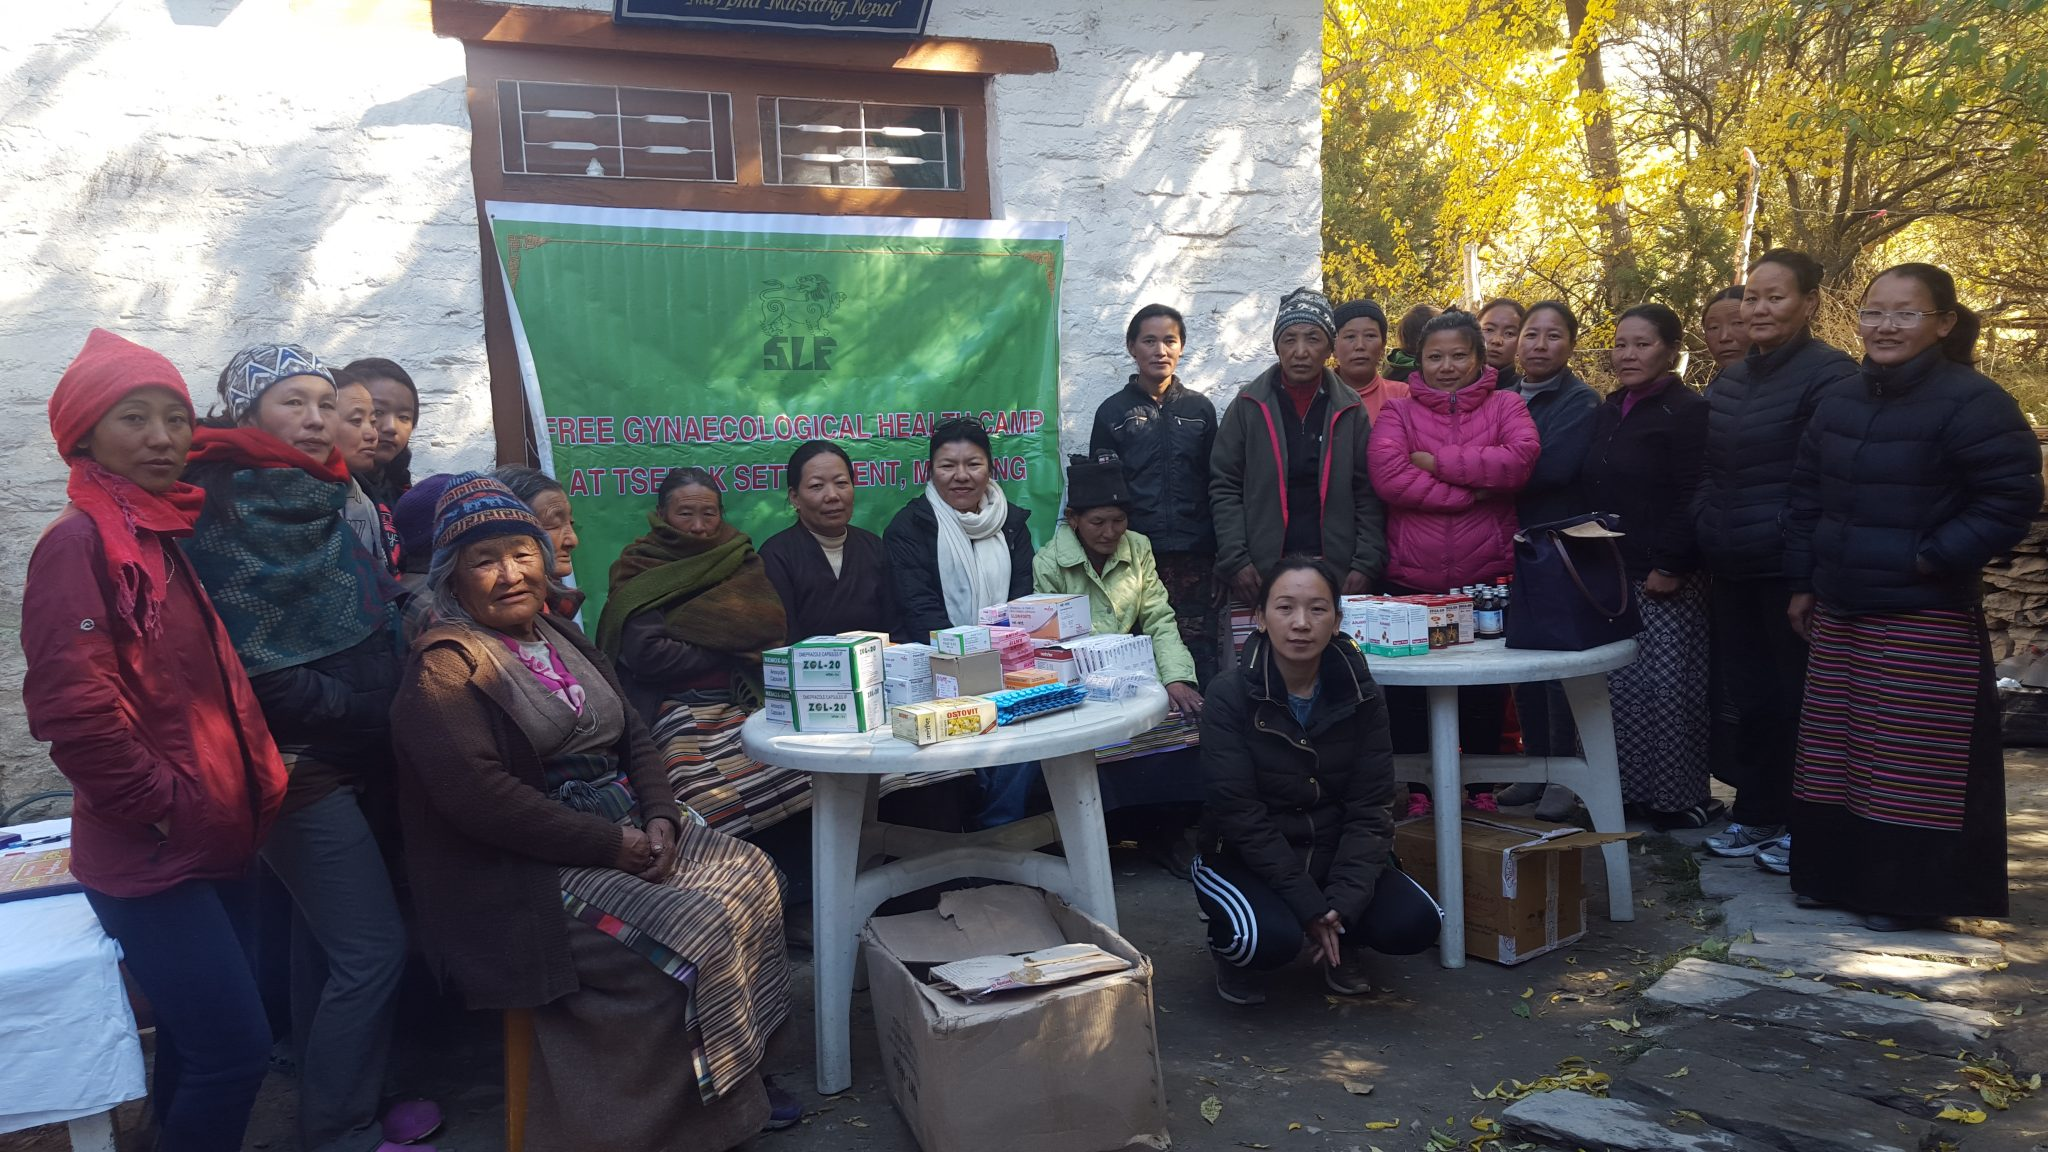 health camp at Tserok